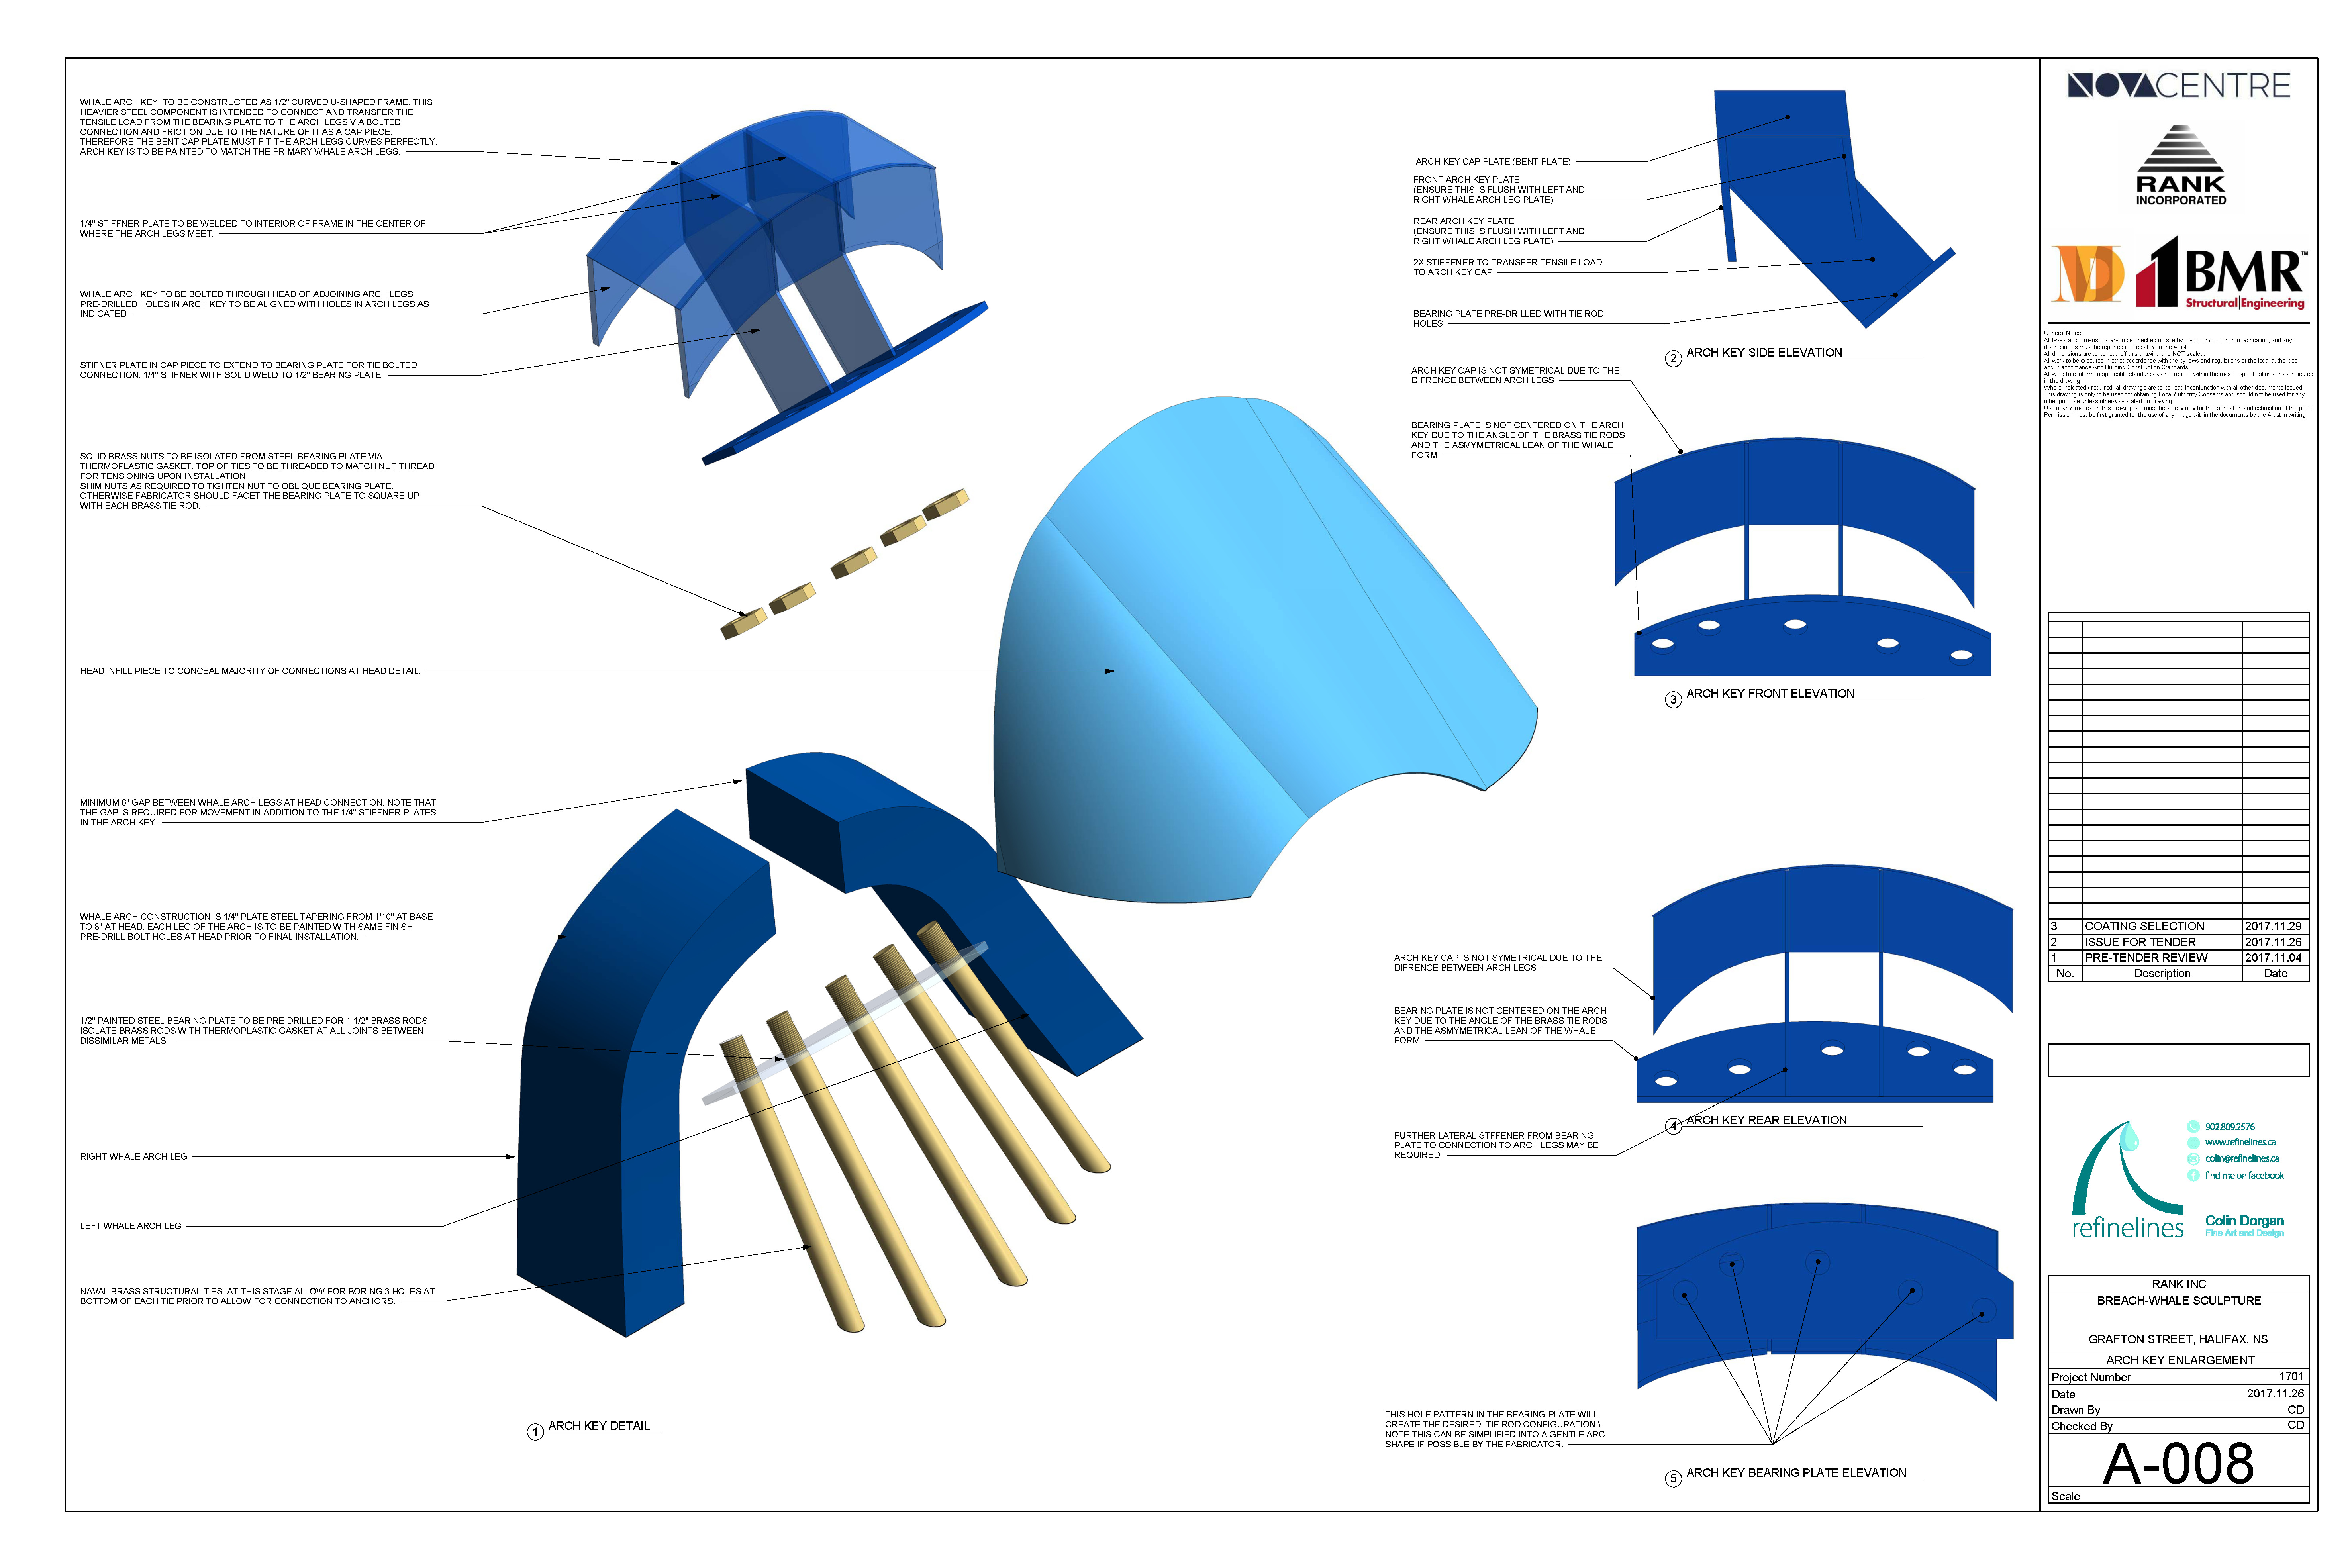 Whale Issue for Tender - Sheet - A-008 - ARCH KEY ENLARGEMENT